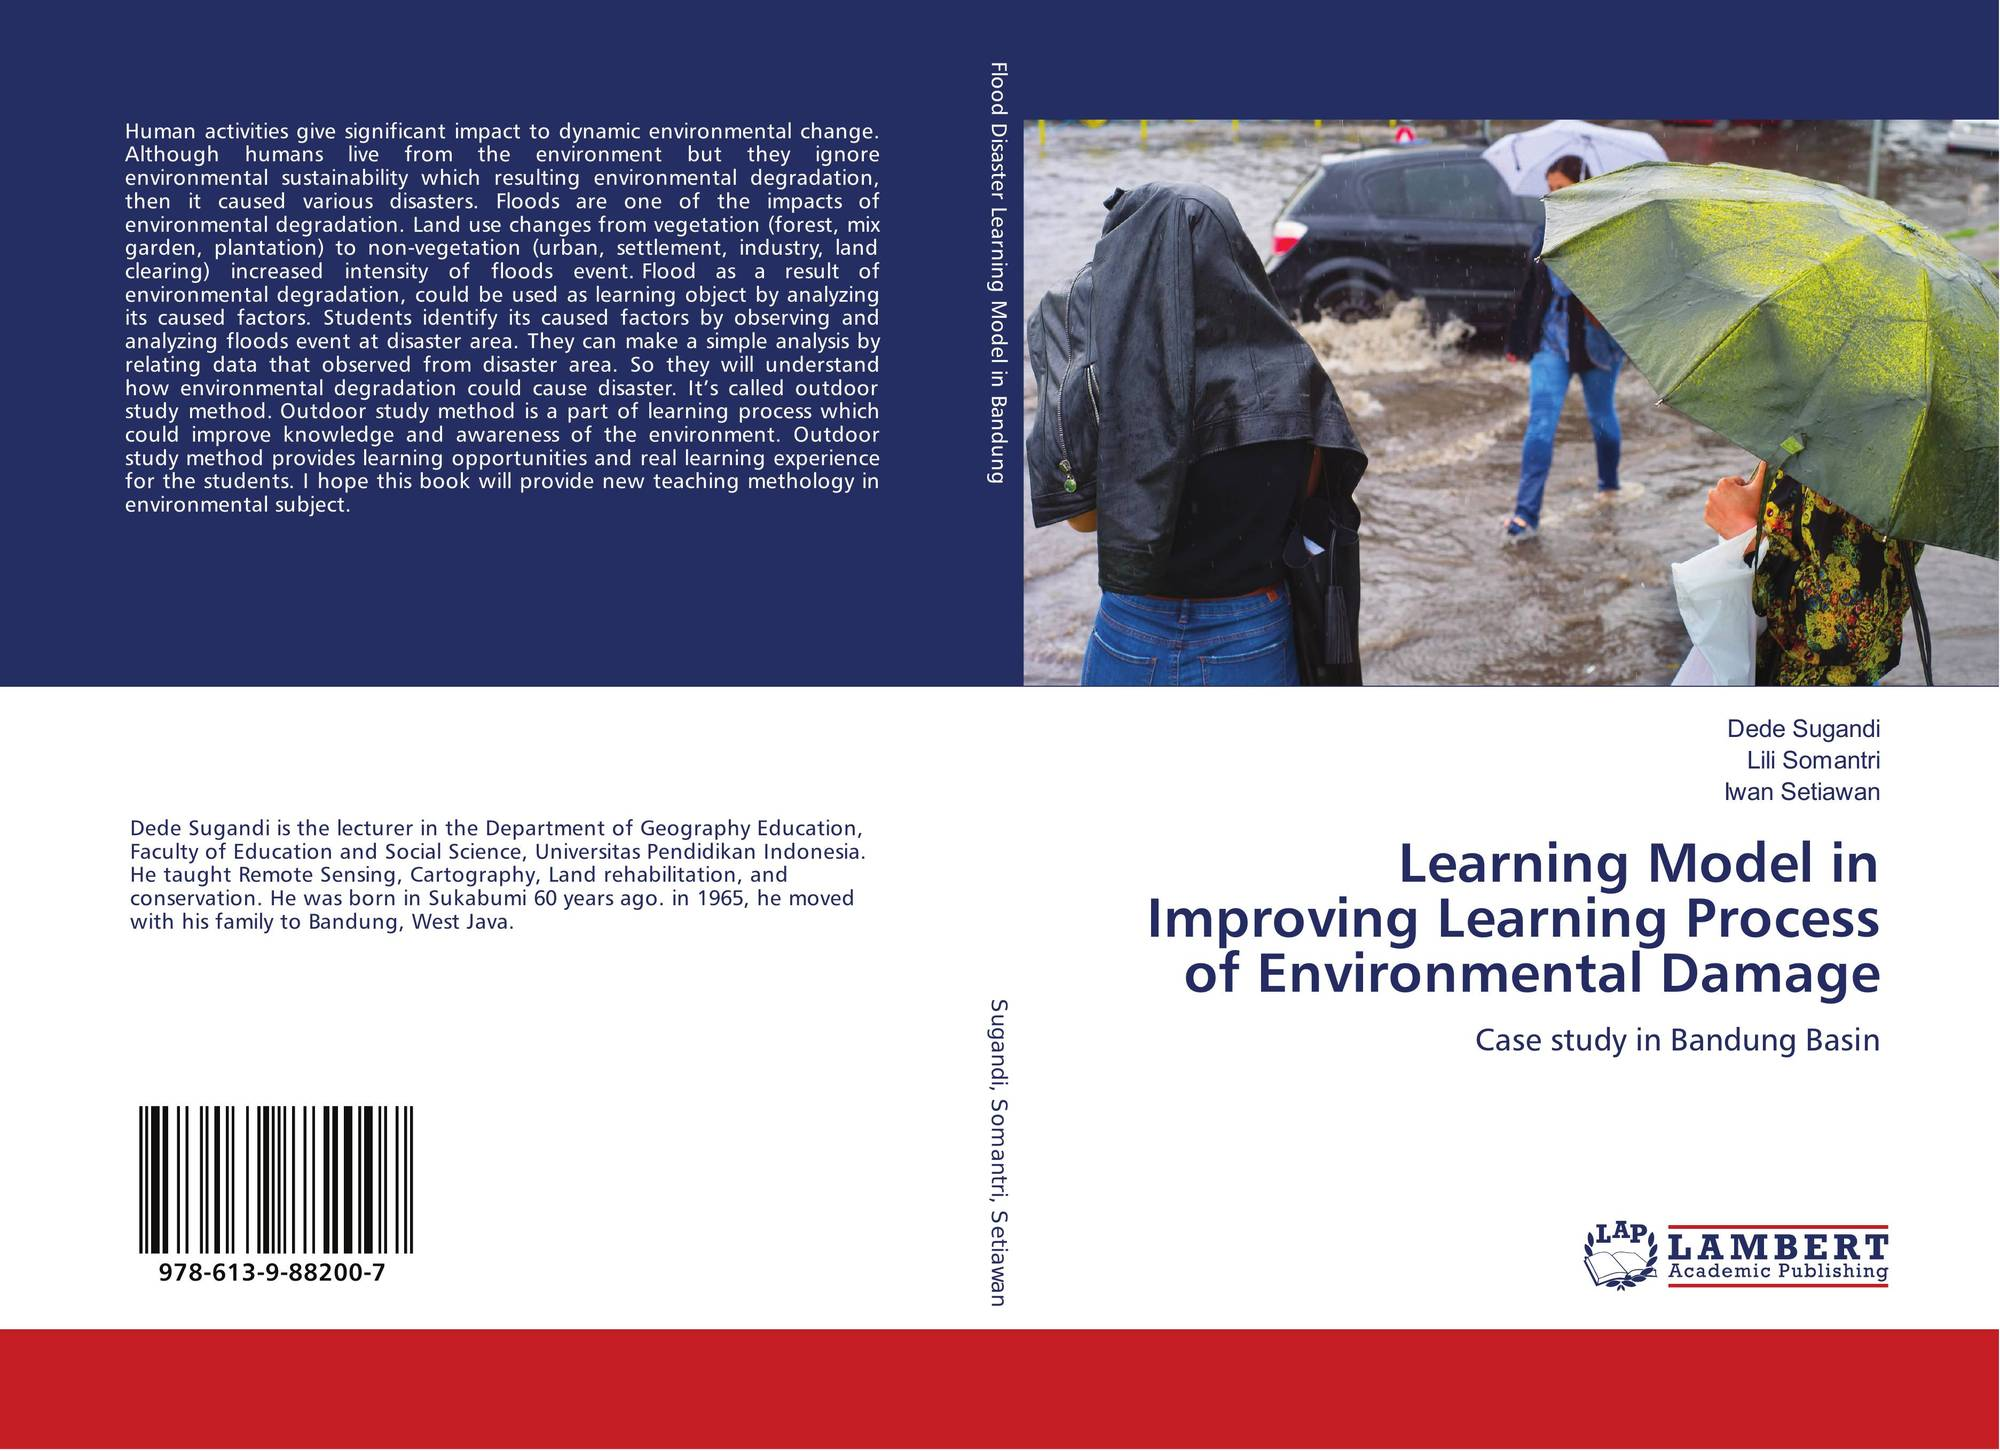 Learning Model in Improving Learning Process of